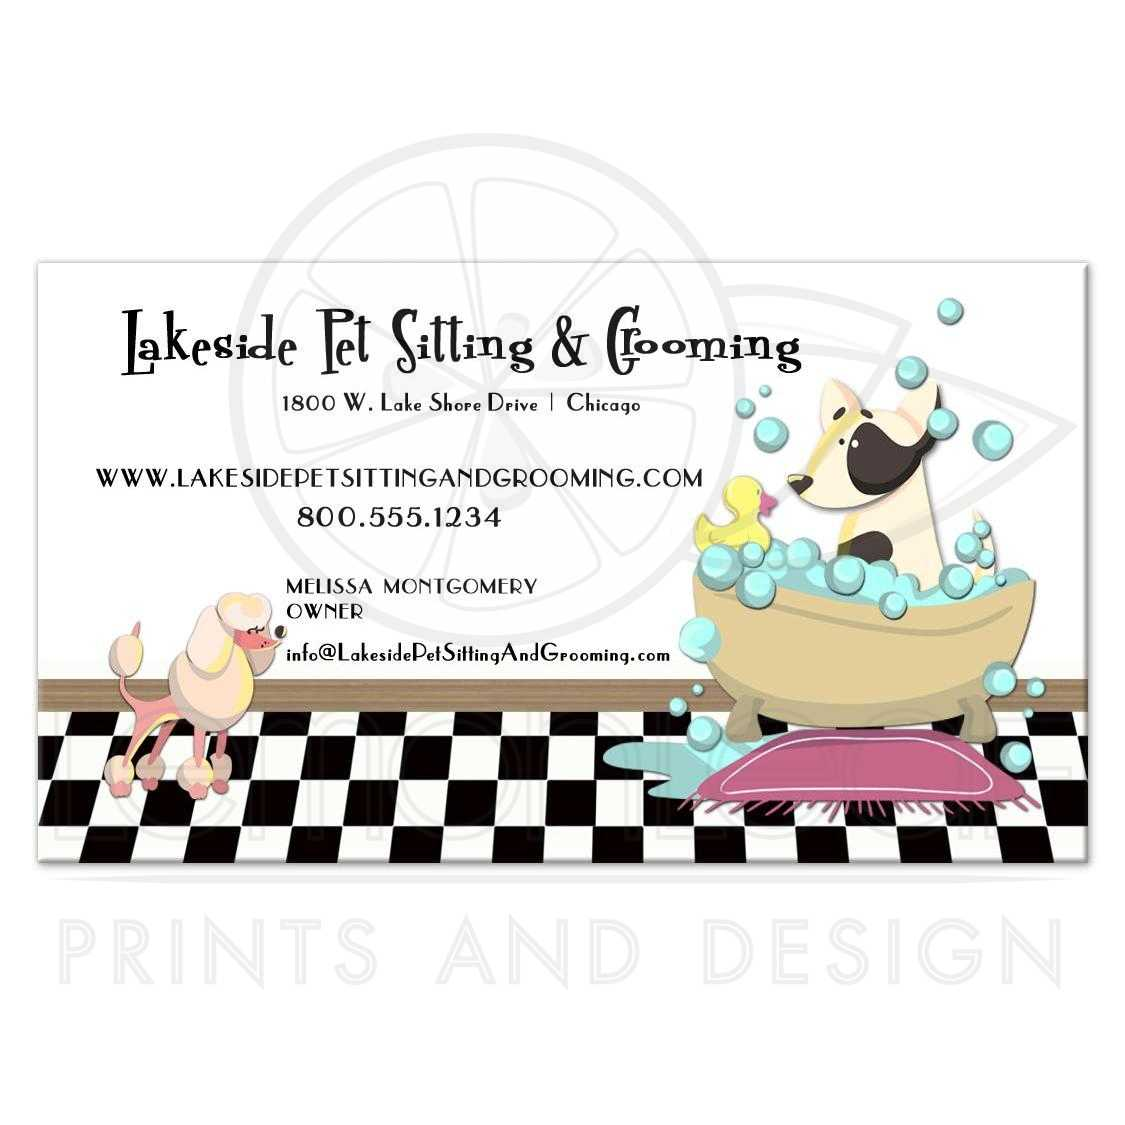 Pet sitting business cards examples geccetackletarts pet sitting business cards examples colourmoves